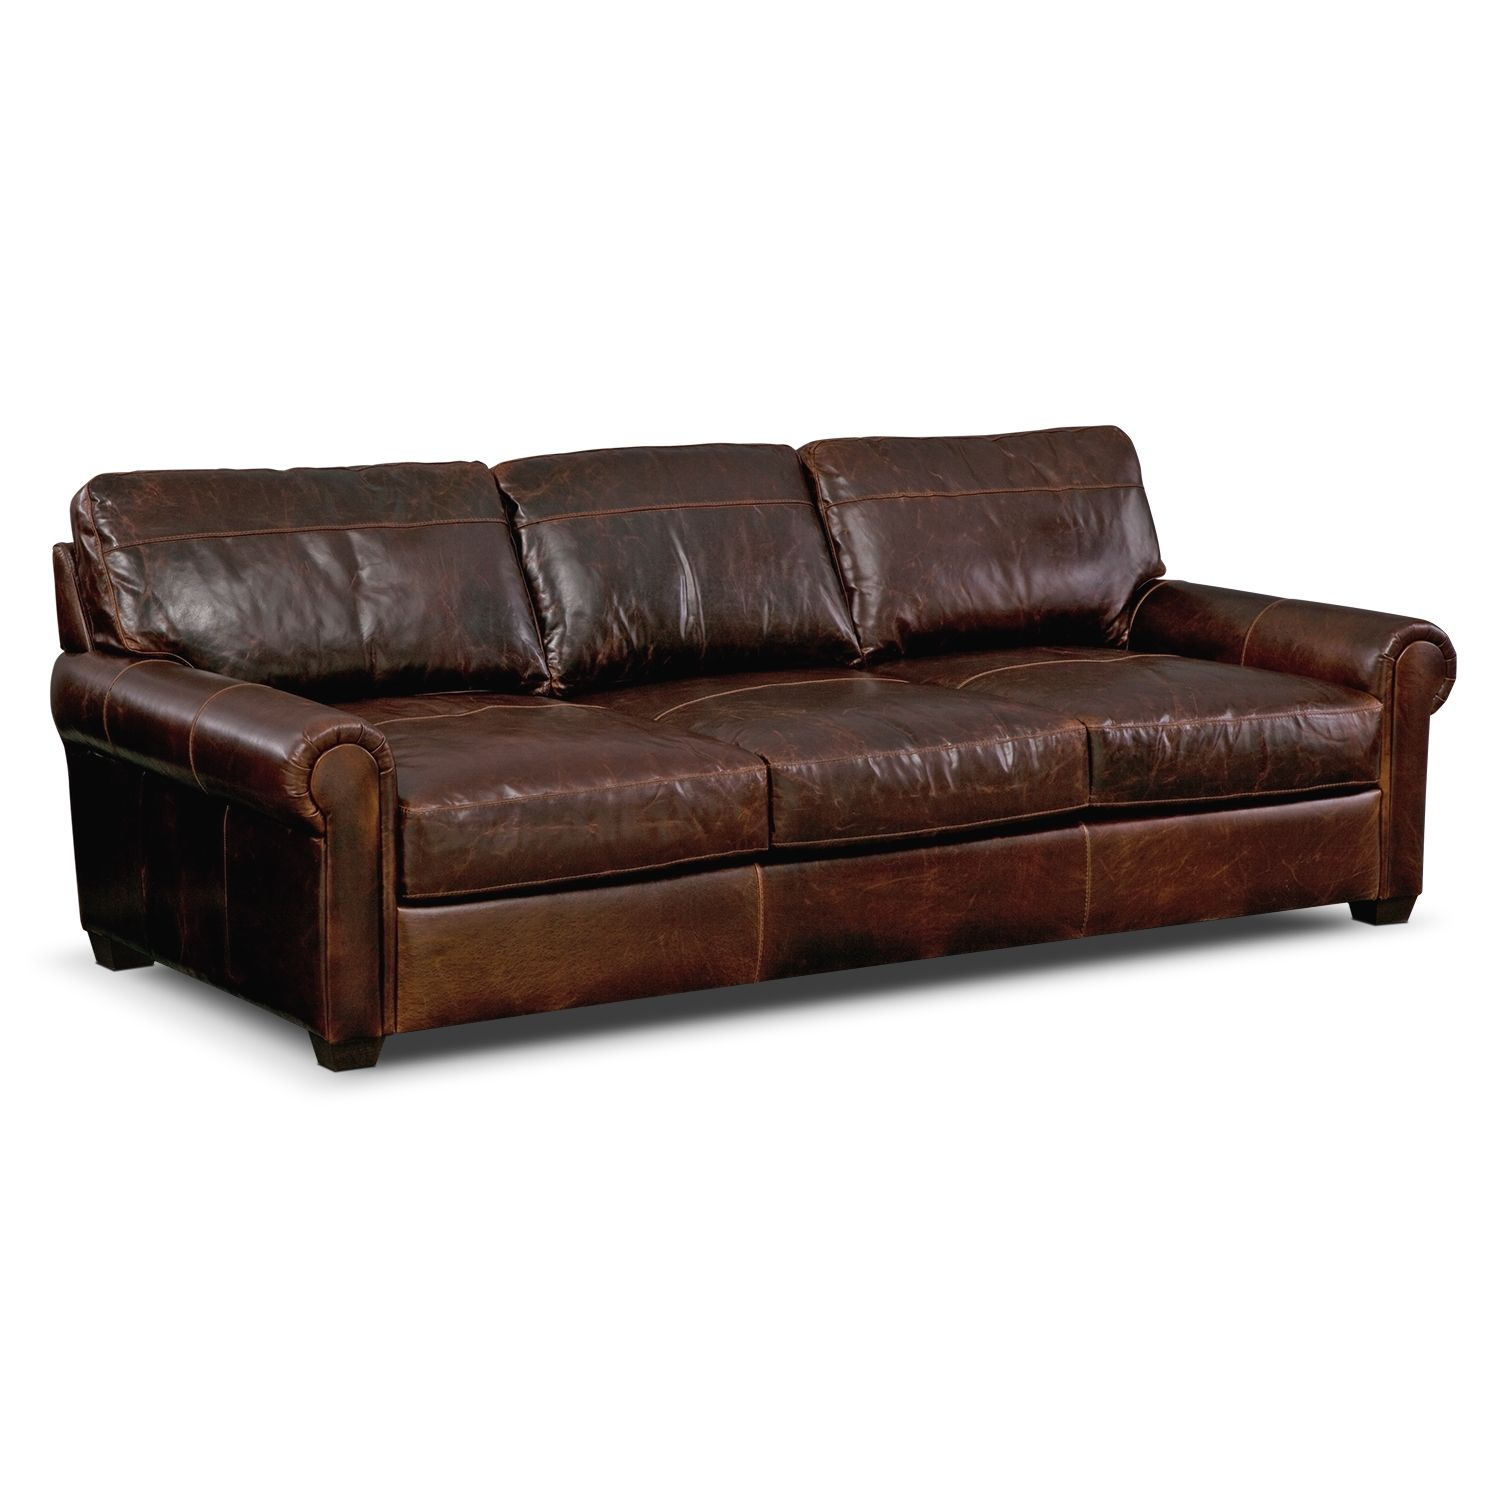 fulham sofa knock off baymax bed online restoration hardware leather knockoff